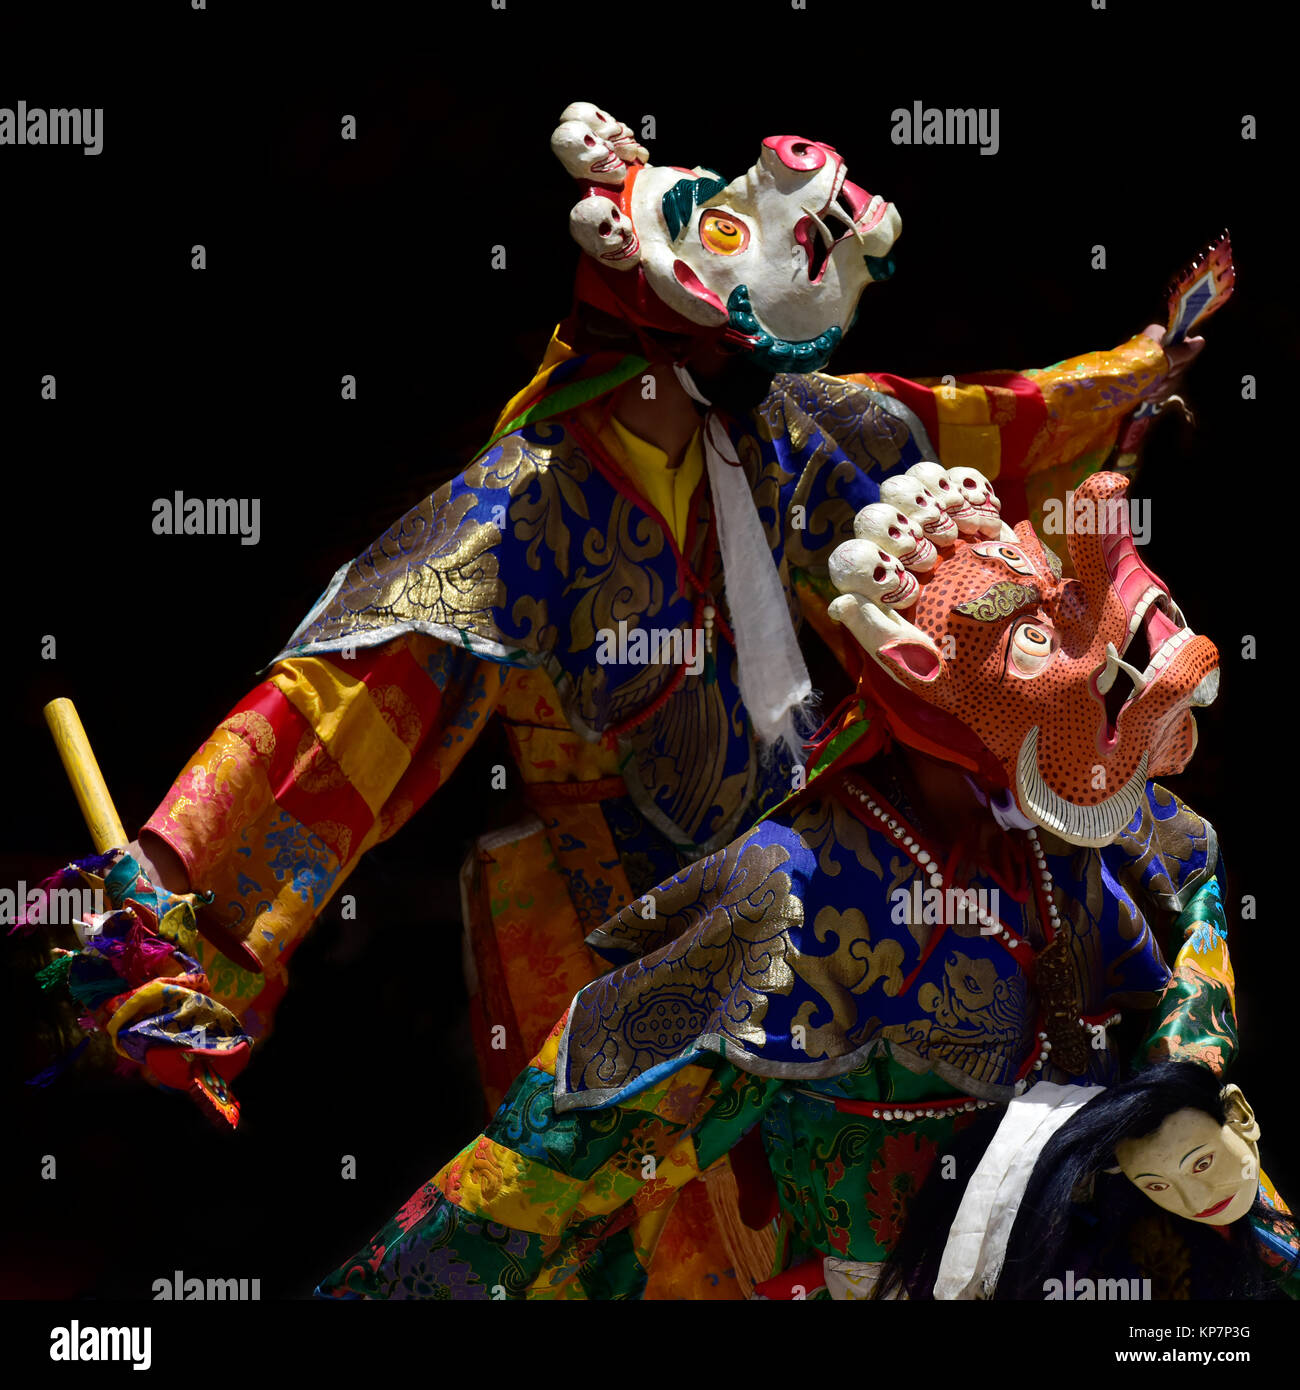 Buddhist monks in ritual national Tibetan clothes perform the Mask Dance depicting human sacrifice. Stock Photo